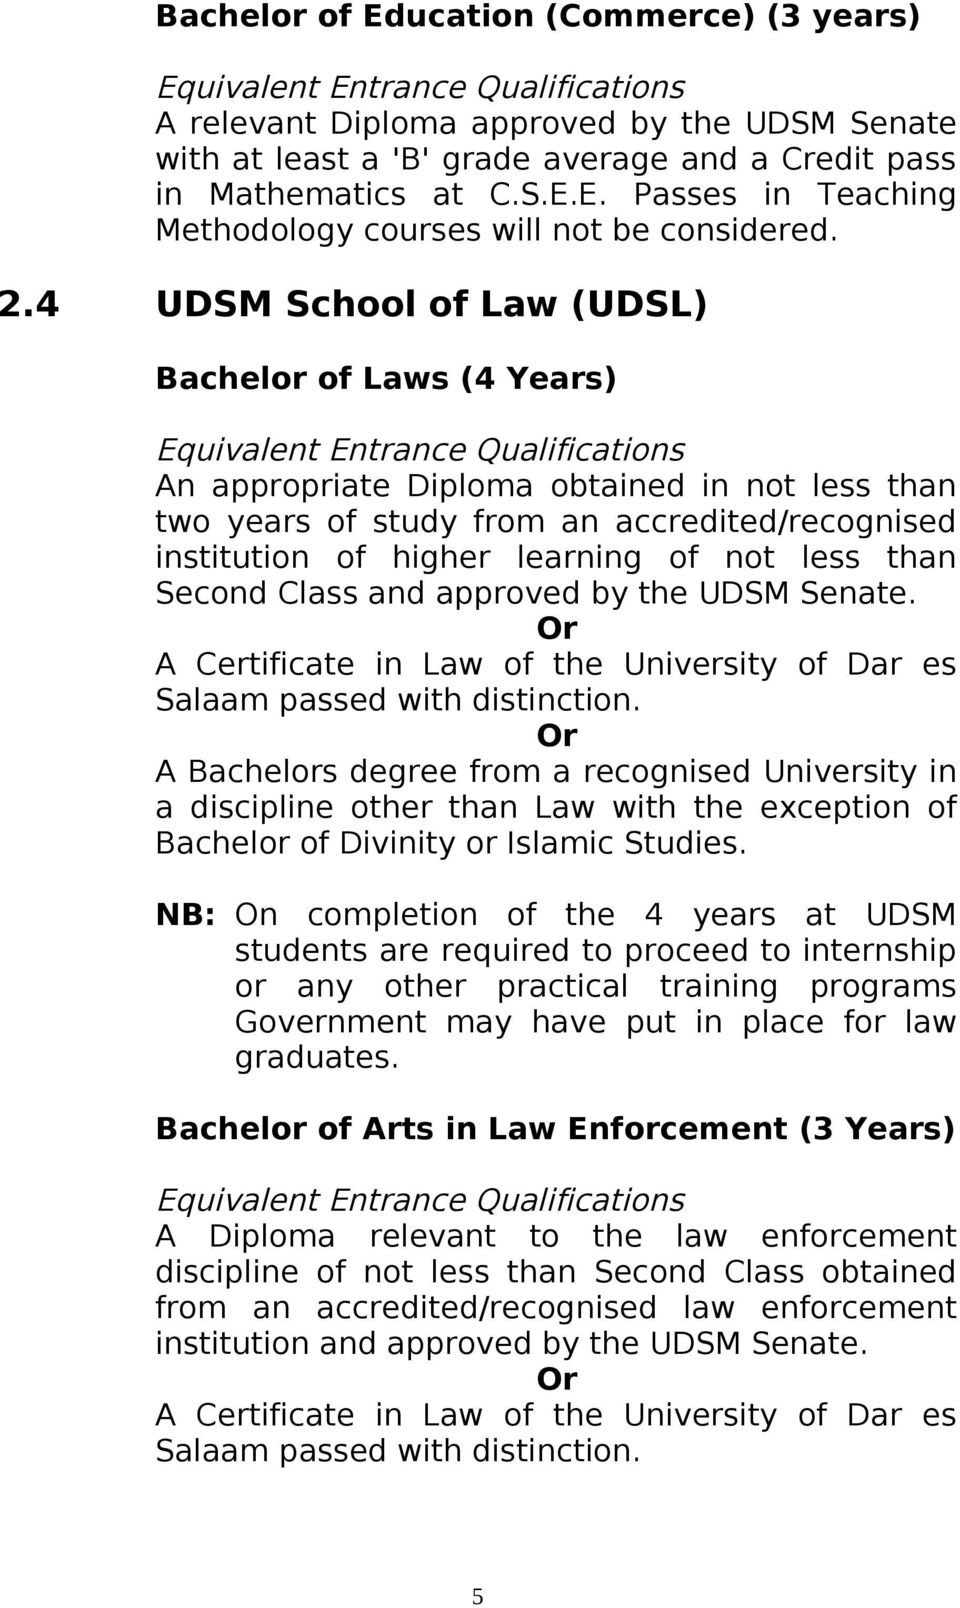 than Second Class and approved by the UDSM Senate. Or A Certificate in Law of the University of Dar es Salaam passed with distinction.